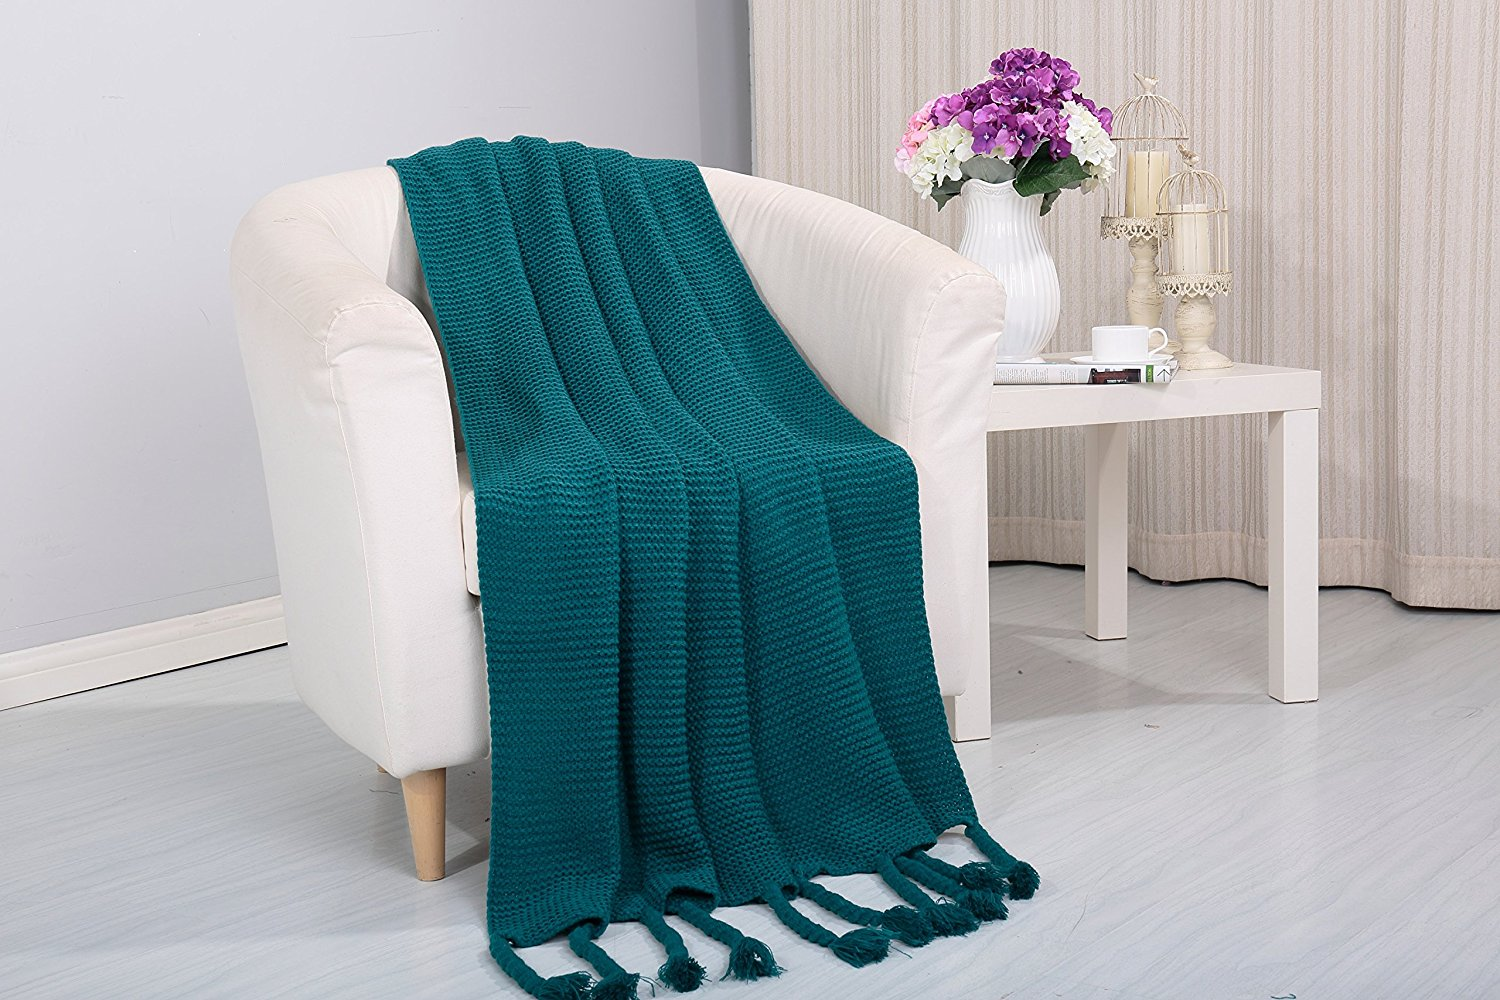 Get Quotations · Camilla Knitted Throw Couch Cover Sofa Blanket, 50x60, Teal